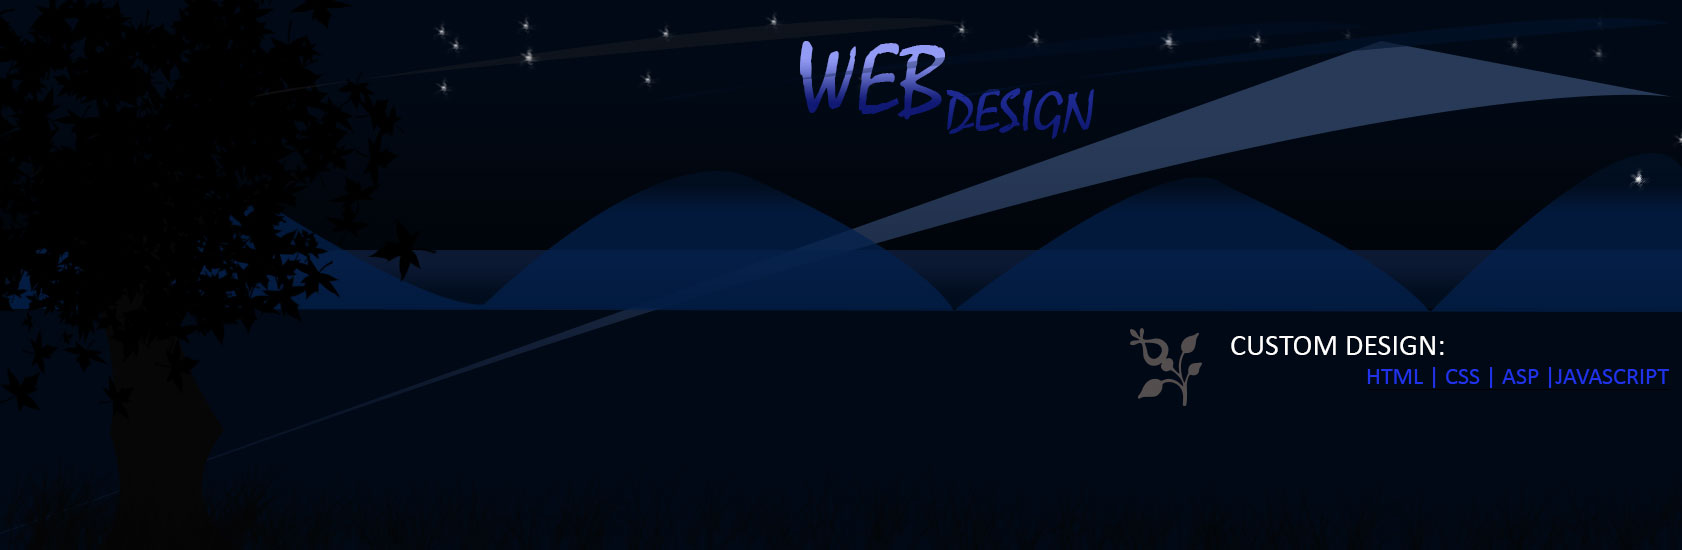 Responsive Web/Mobile Design